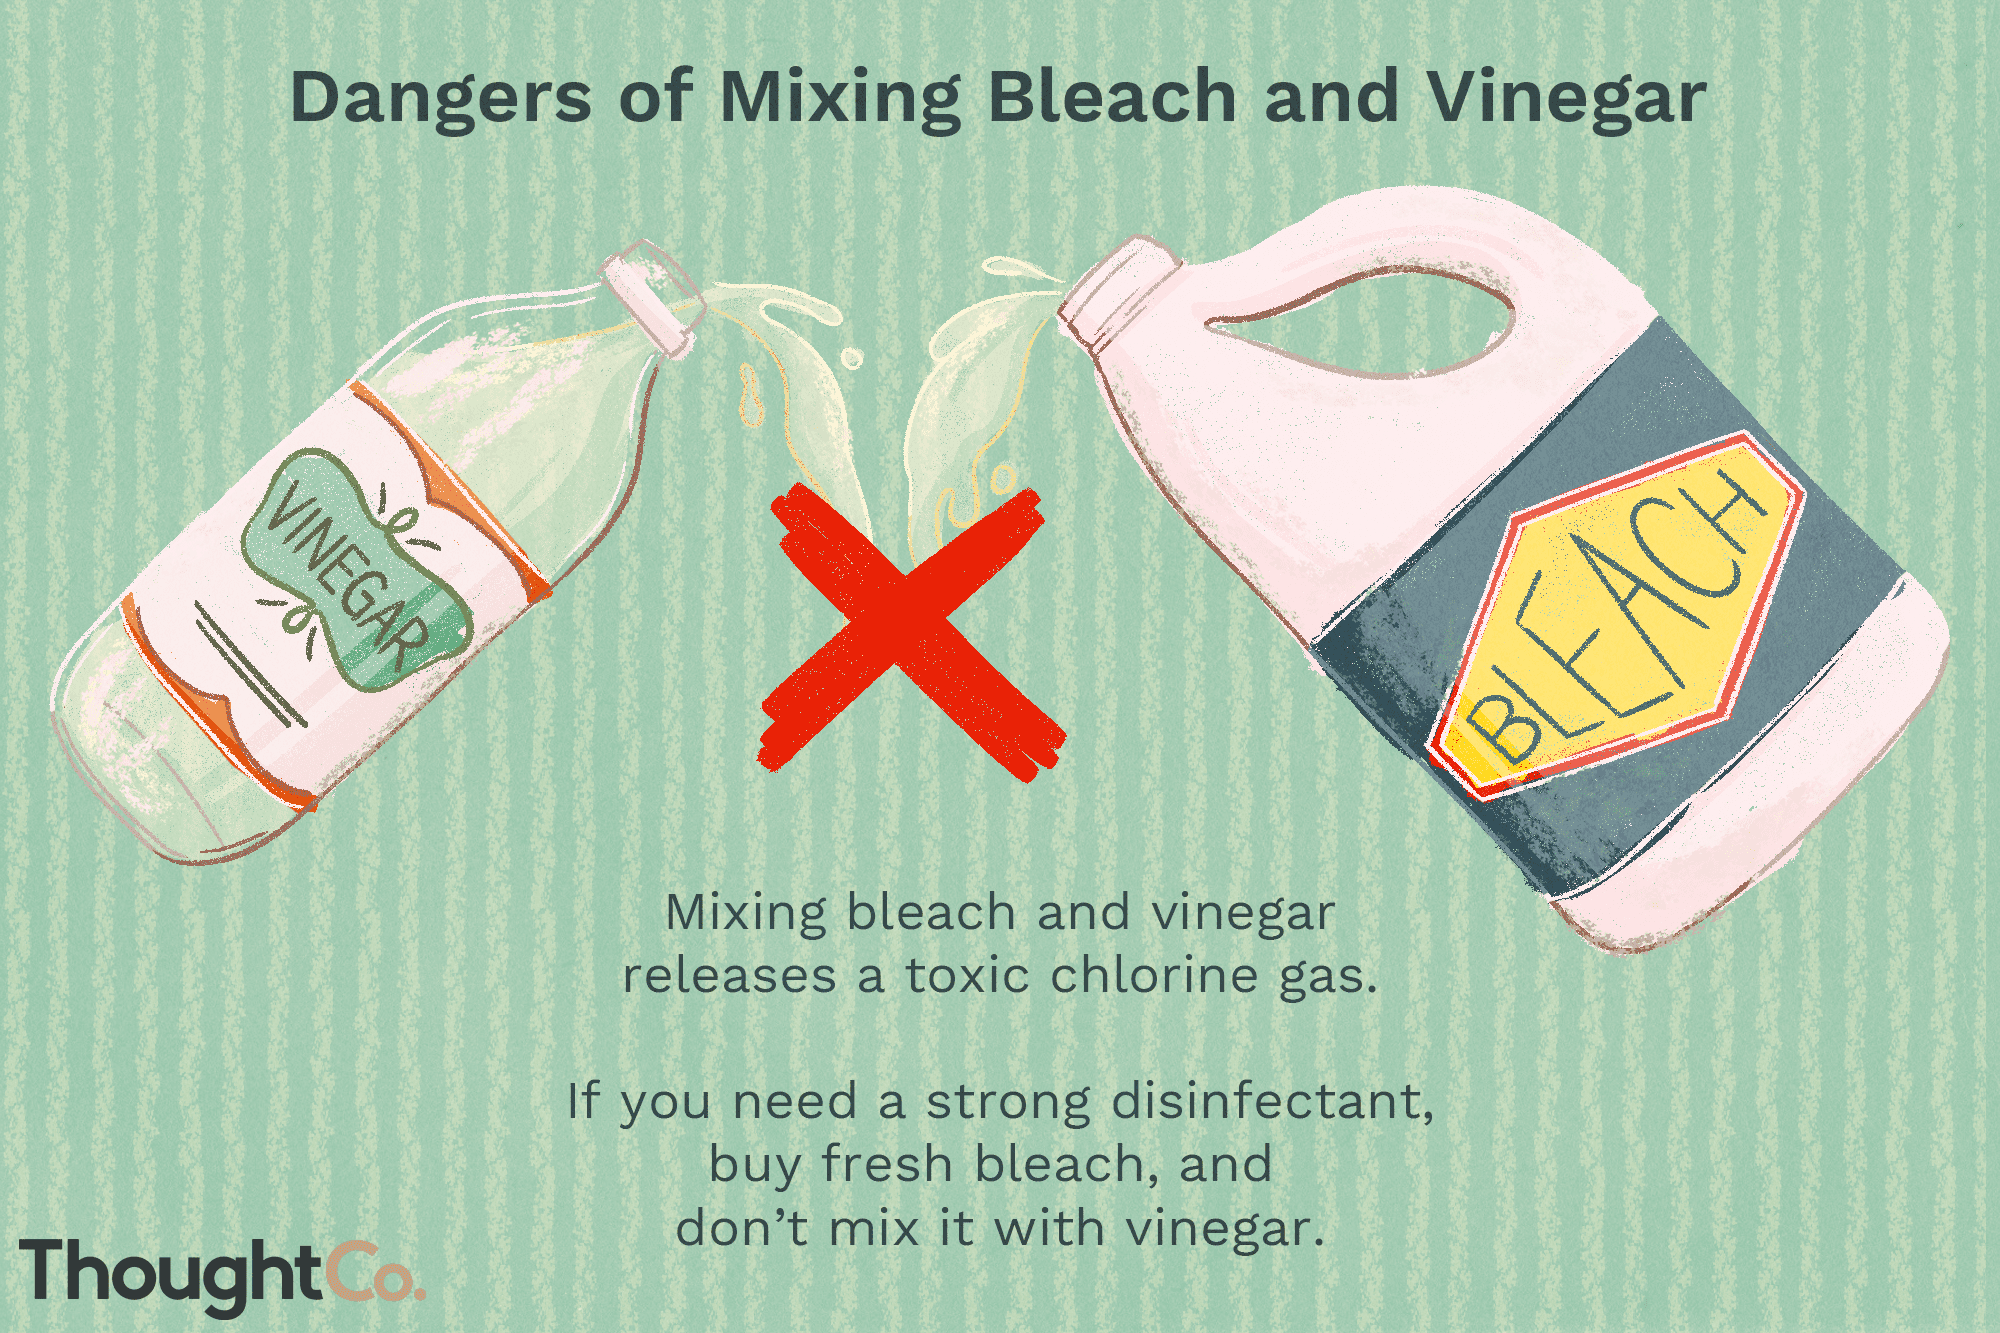 Why You Shouldn't Mix Bleach and Vinegar